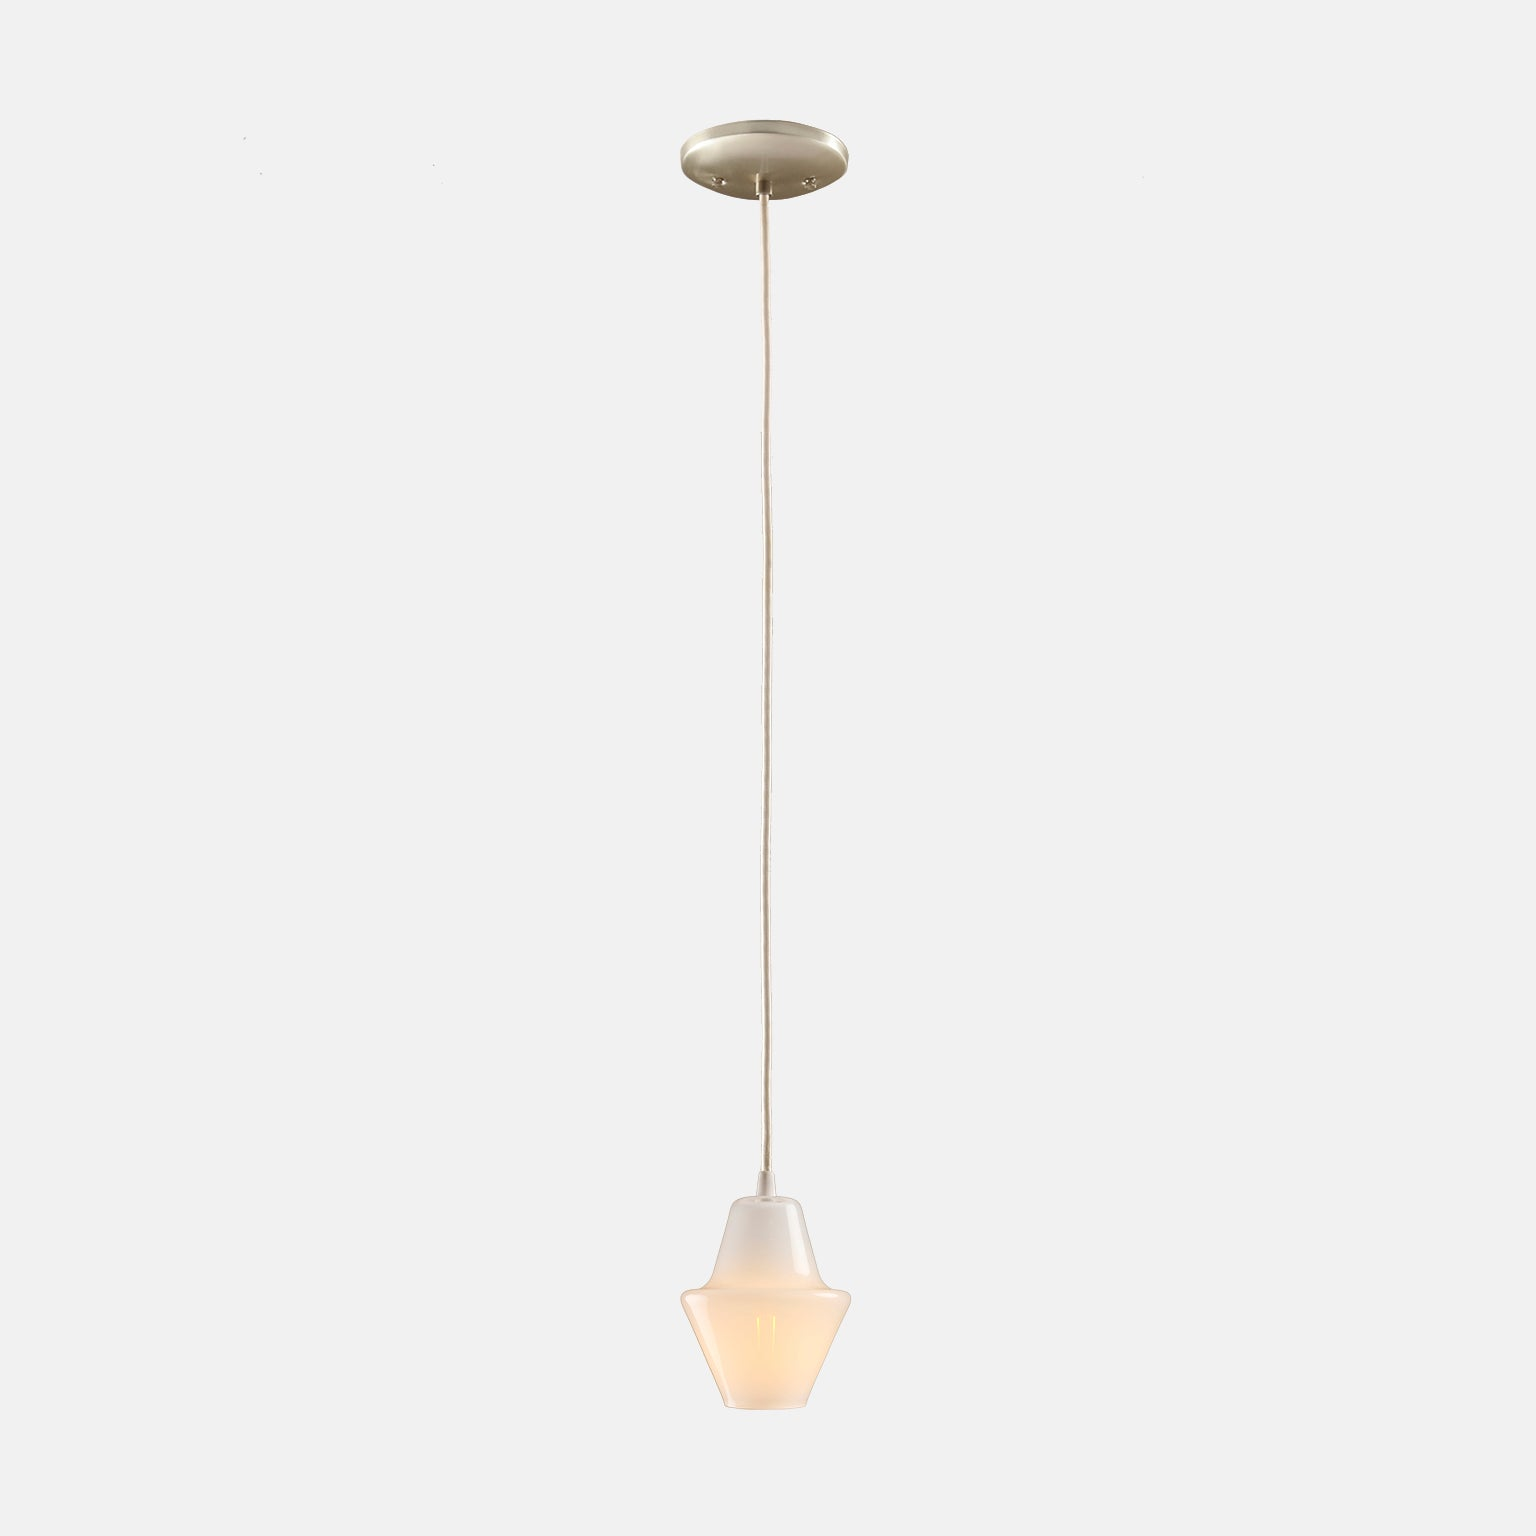 Cumberland Pendant in Opal White with Nickel Details